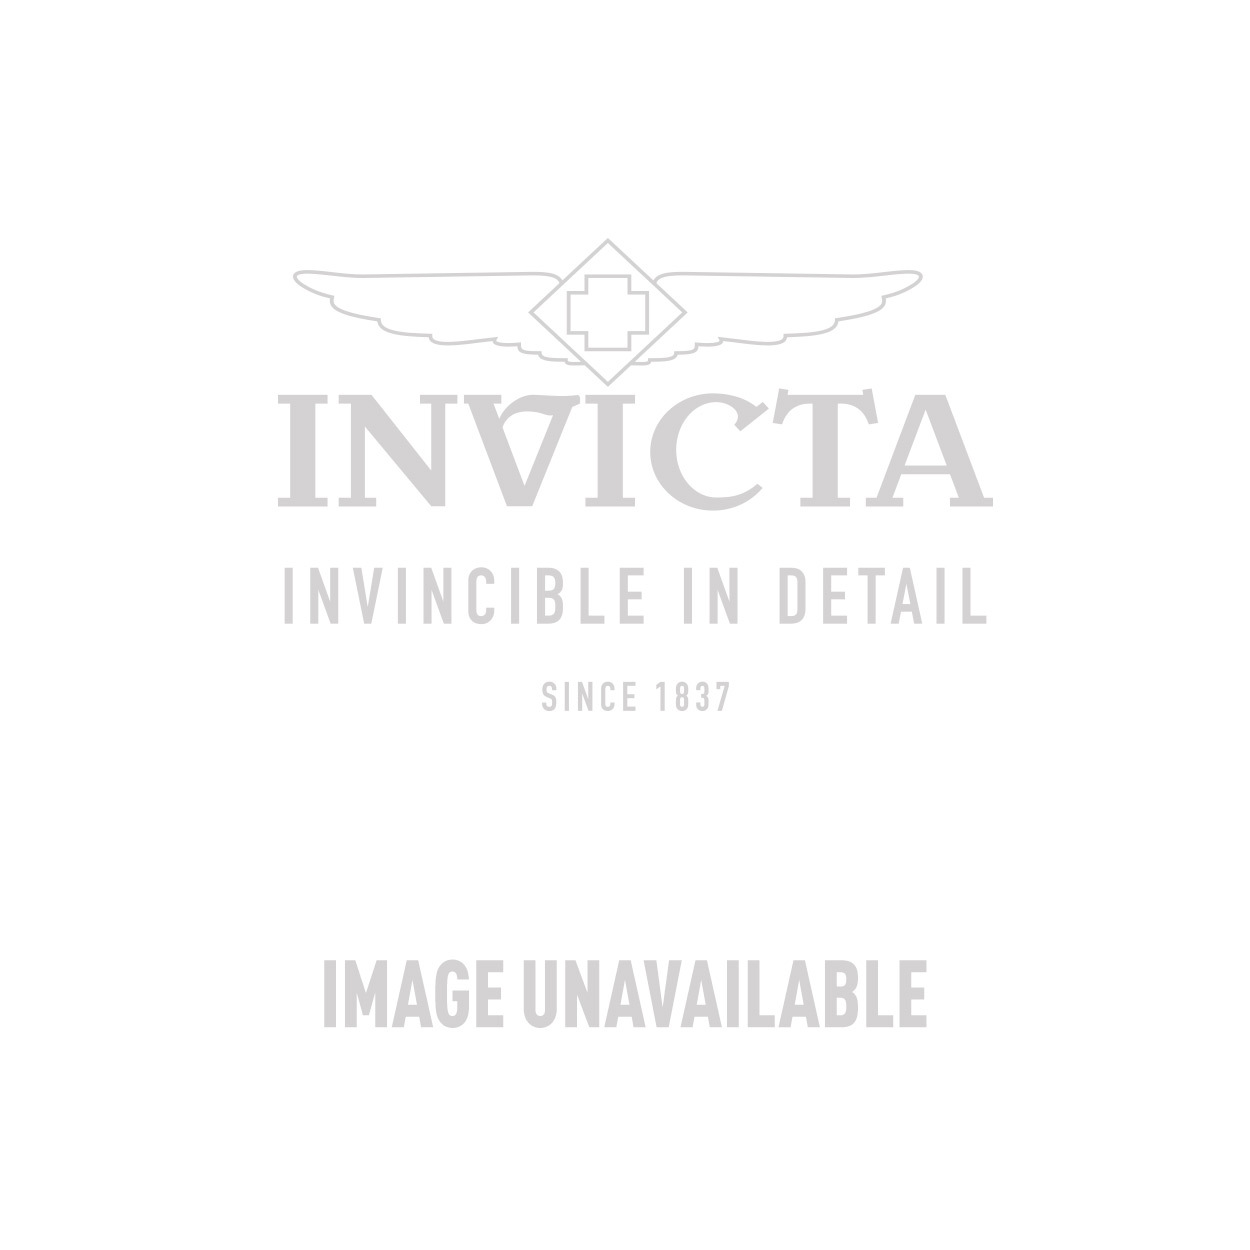 Invicta Speedway Swiss Made Quartz Watch - Gunmetal, Stainless Steel case with Red tone Genuine Stingray band - Model 17672